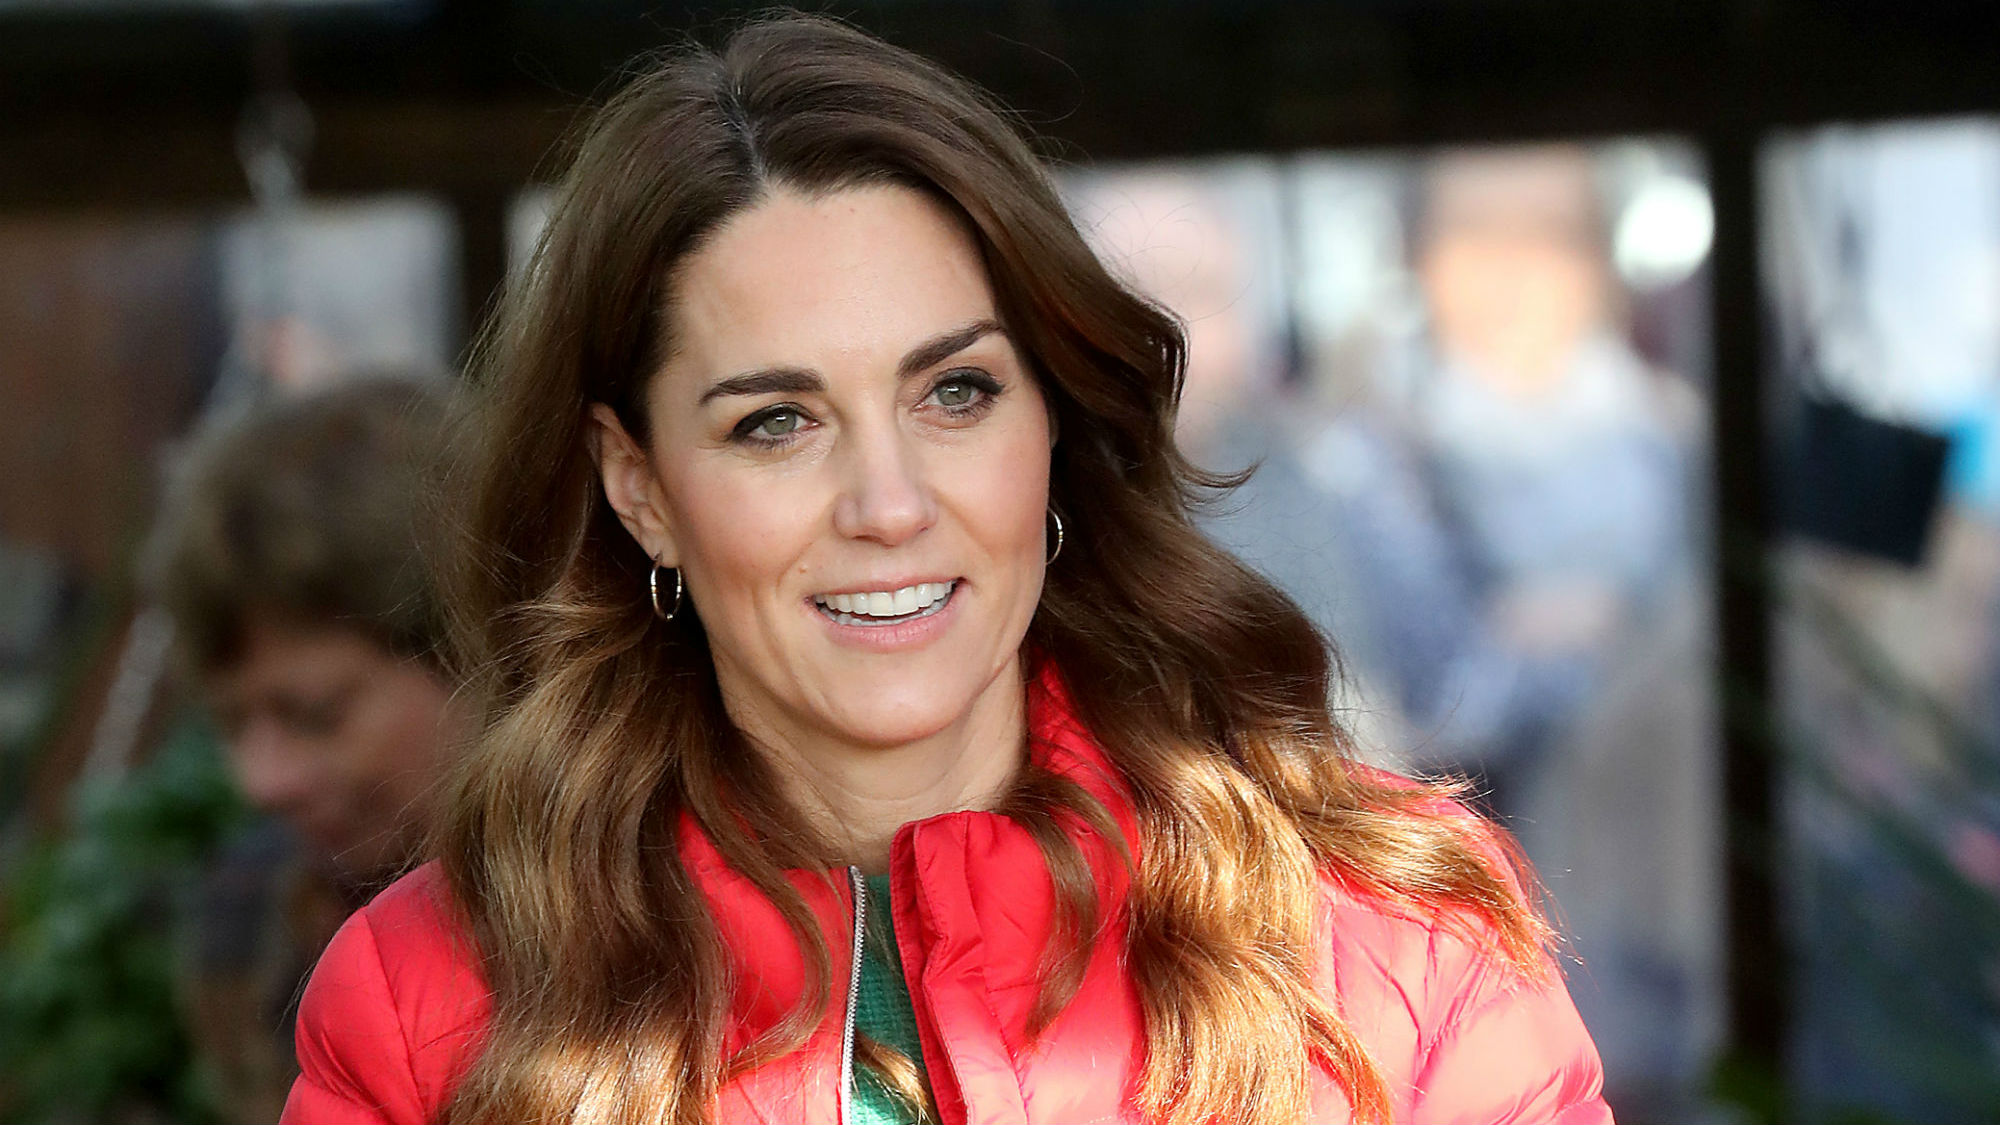 Kate Middleton has been given a patronage, passed down by the Queen